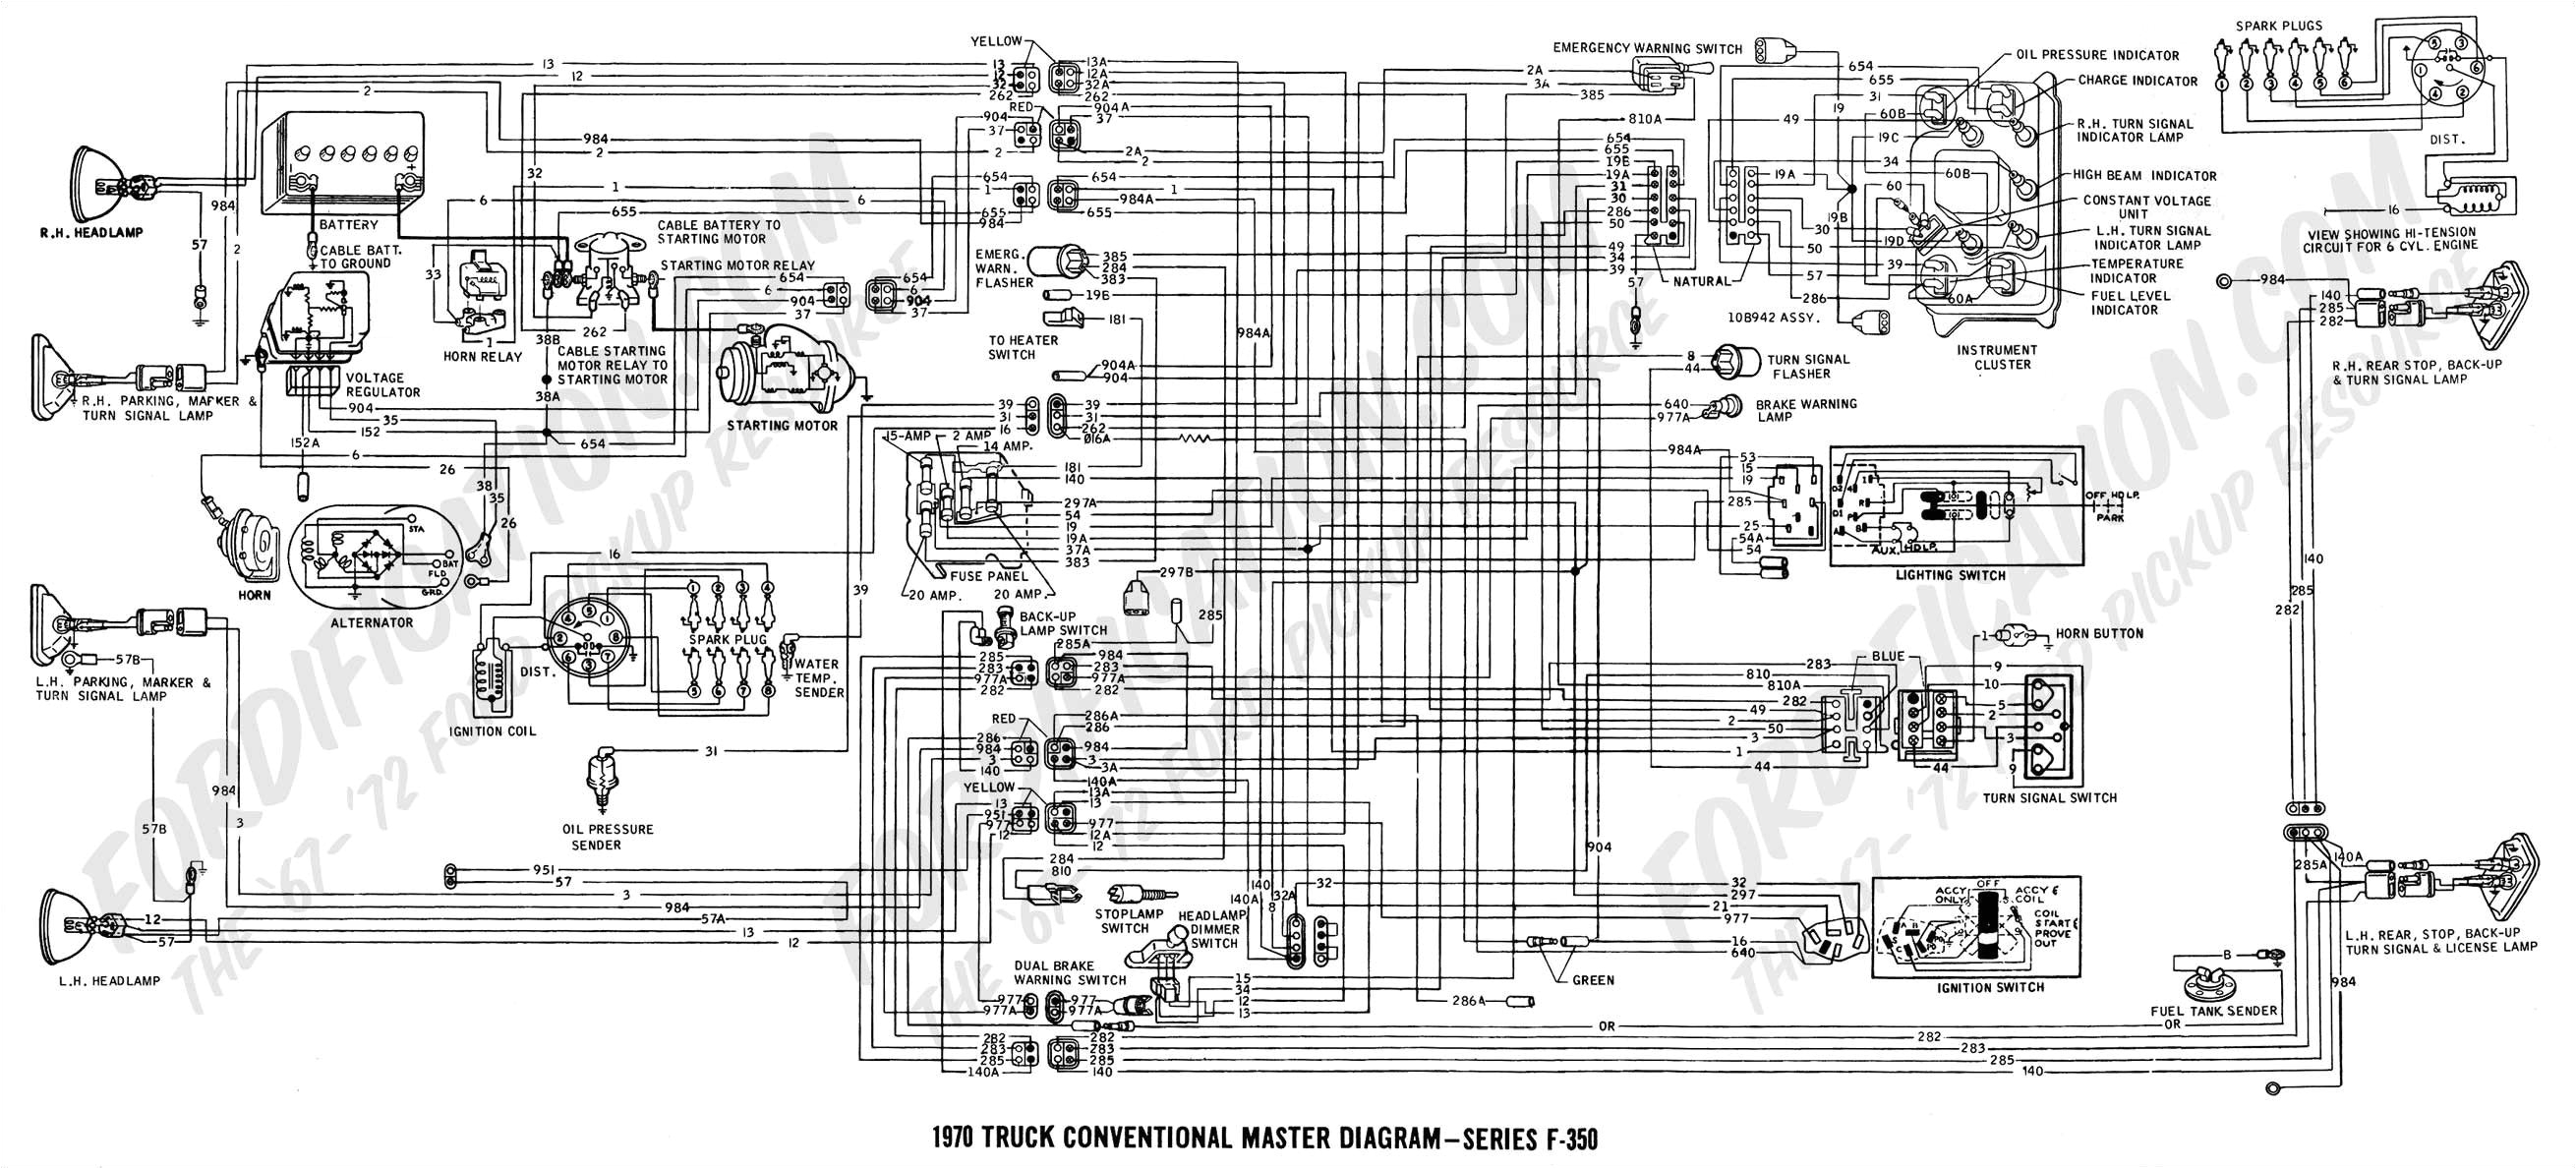 ford windstar abs relay location also 1990 ford truck wiper wiring mix 2001 f250 engine diagram